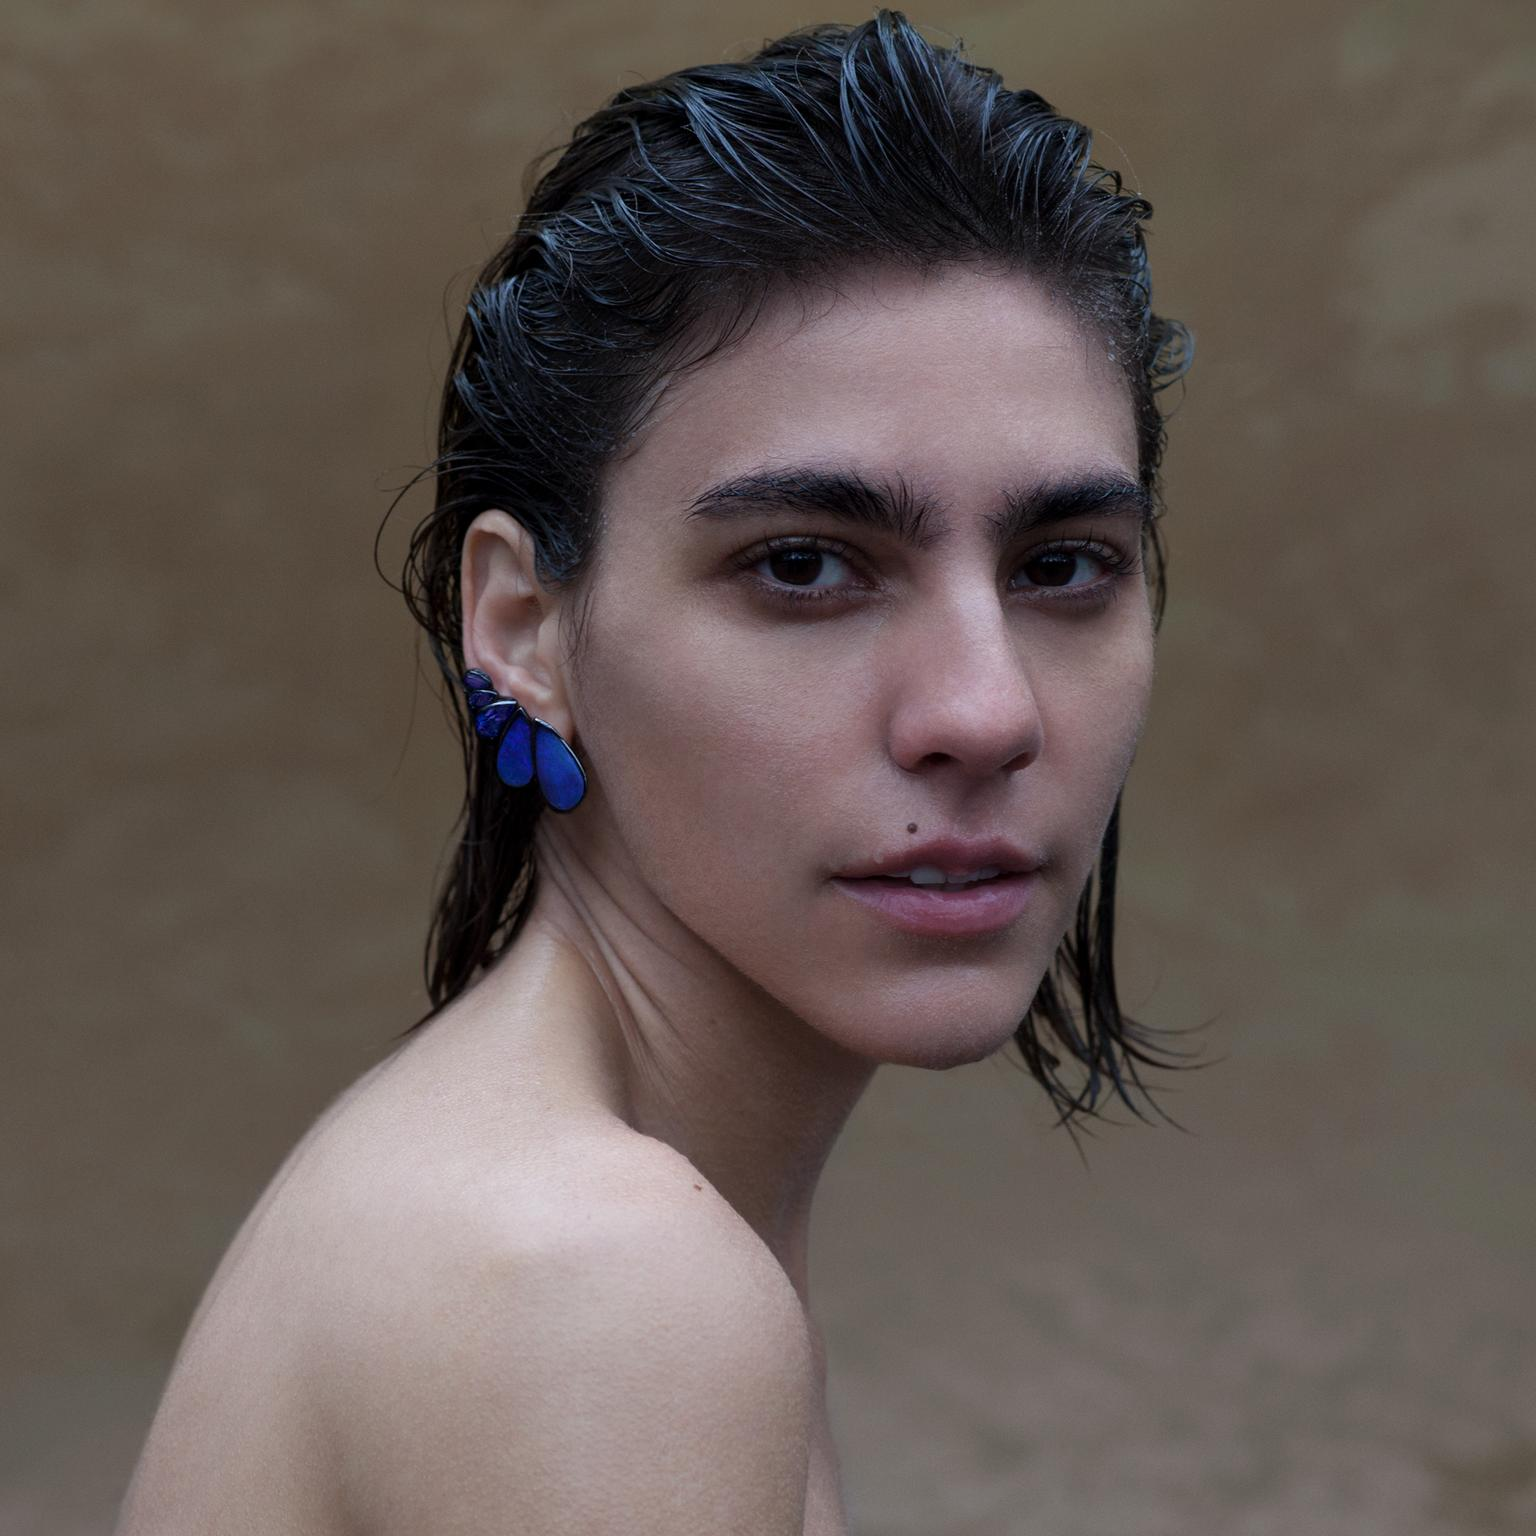 Fernando Jorge opal and diamond earrings on model